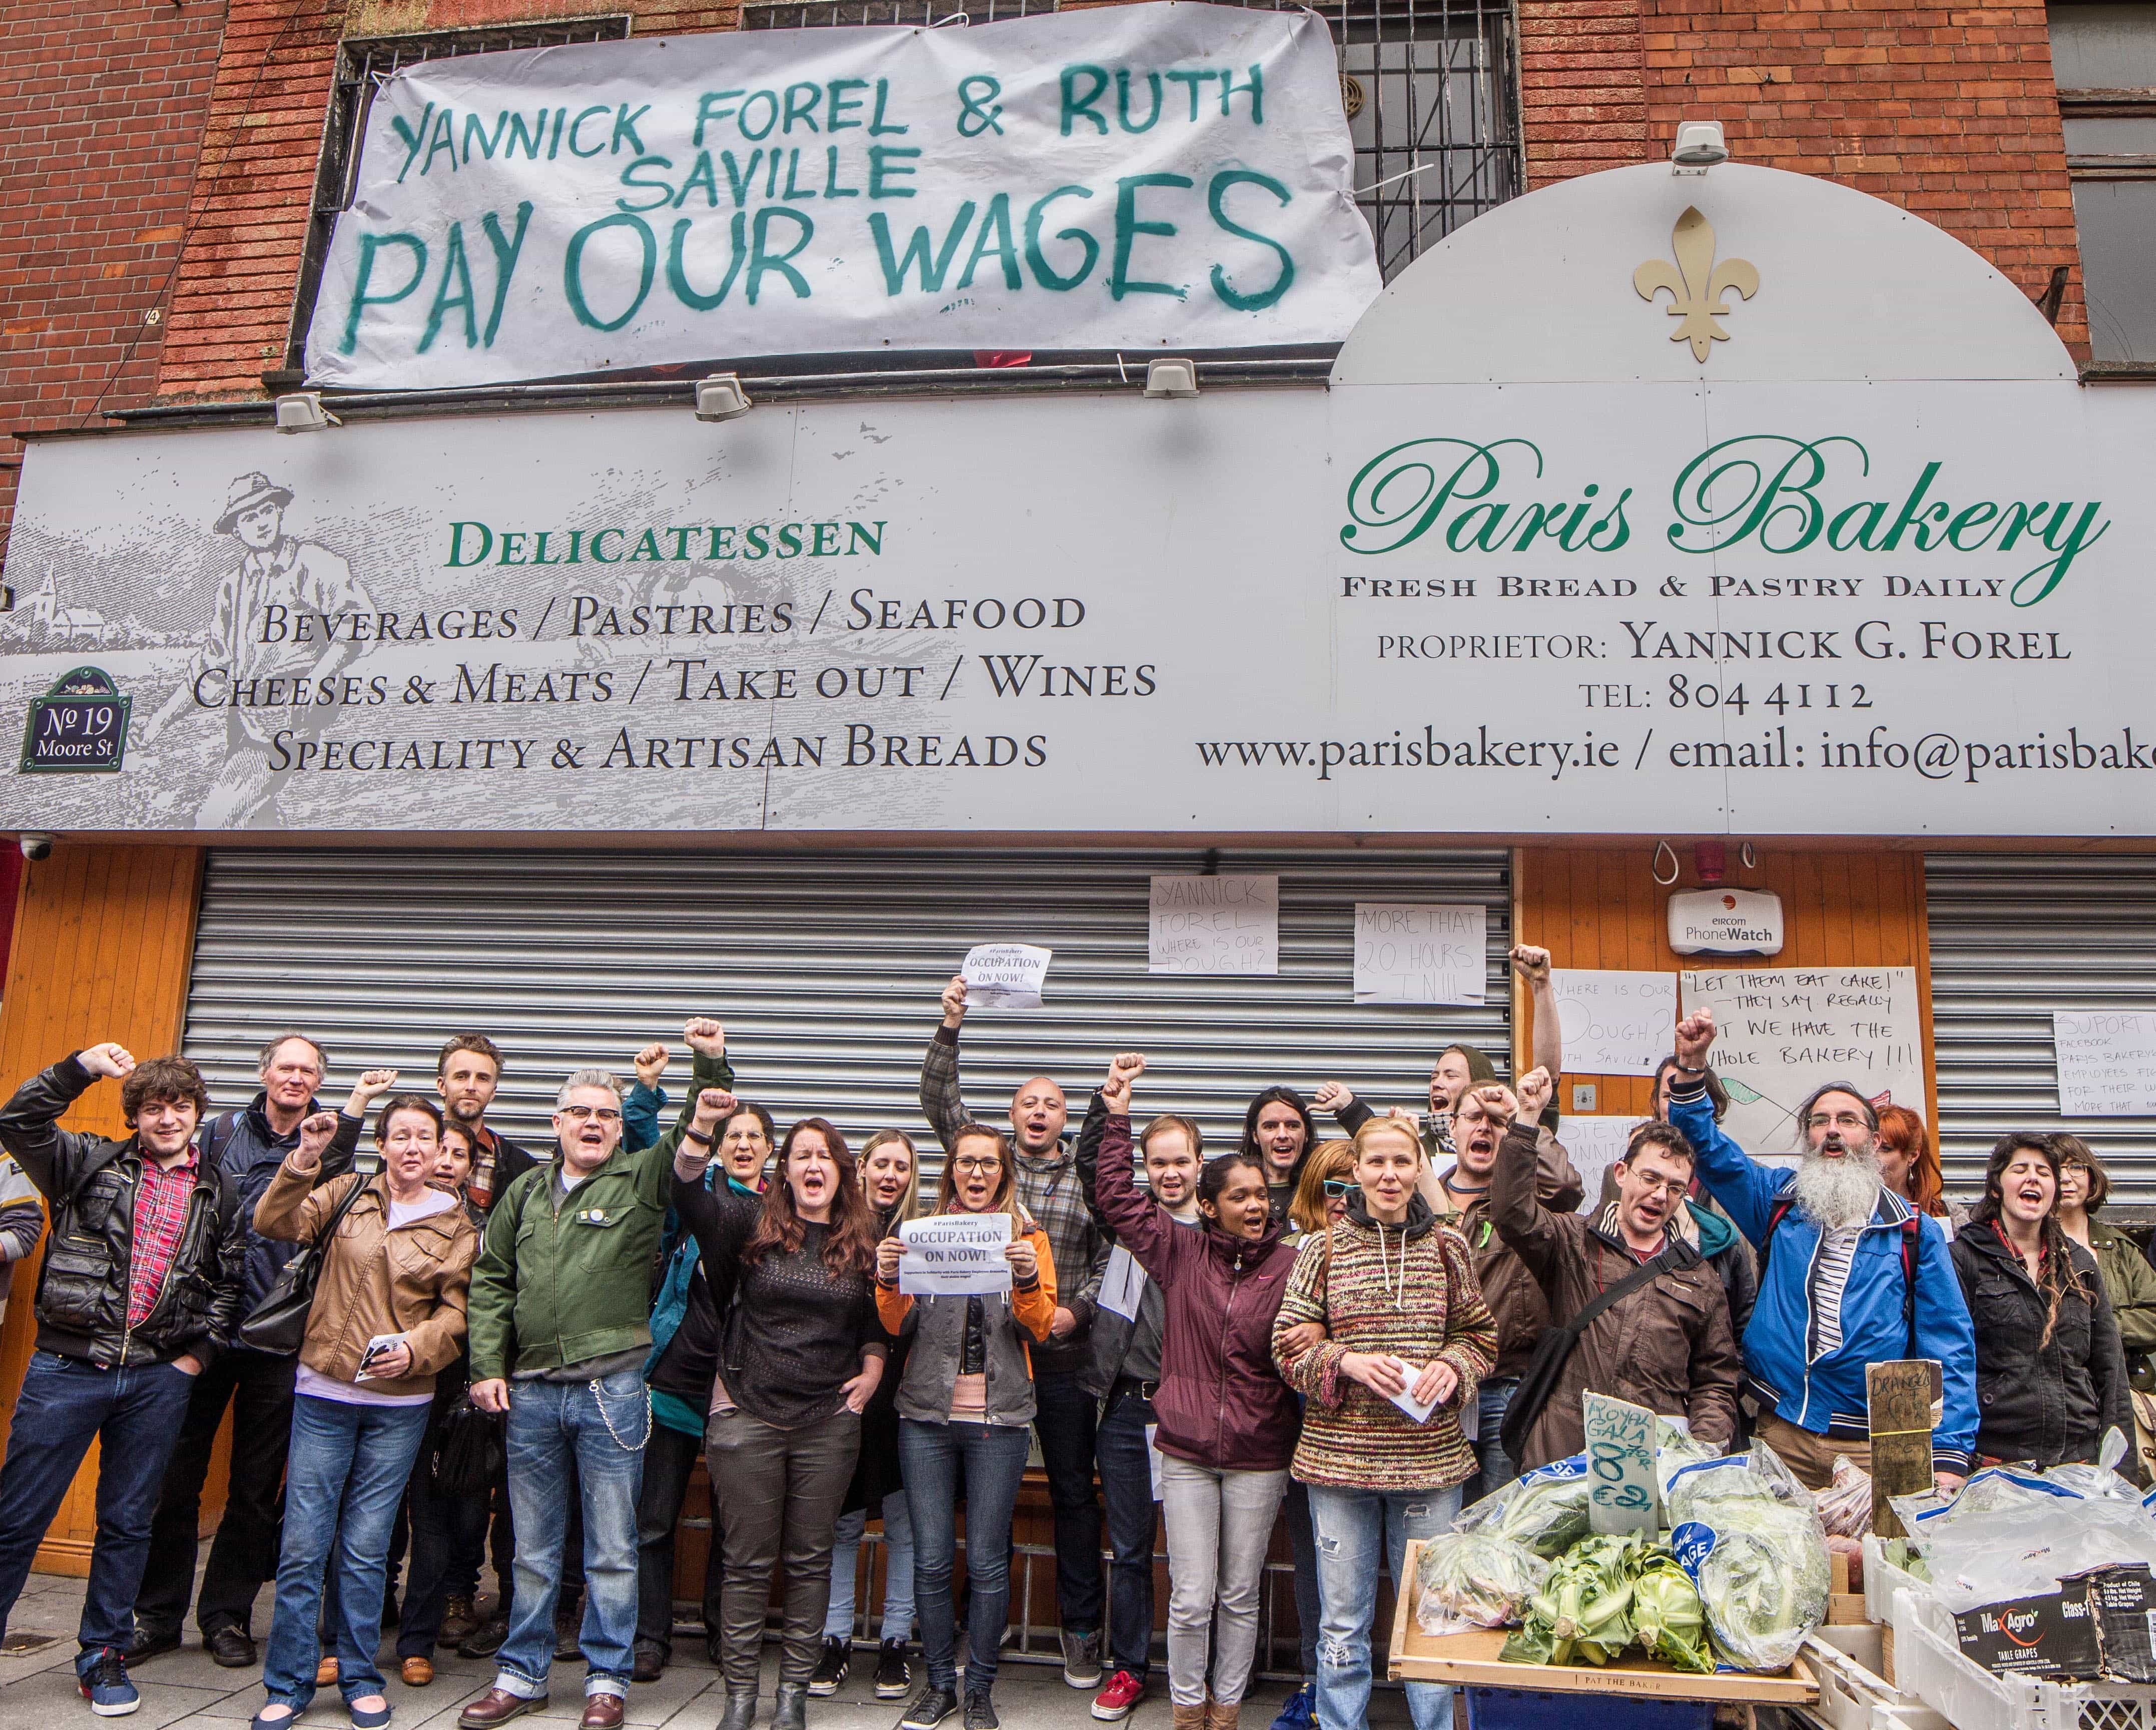 Paris Bakery employees and supporters